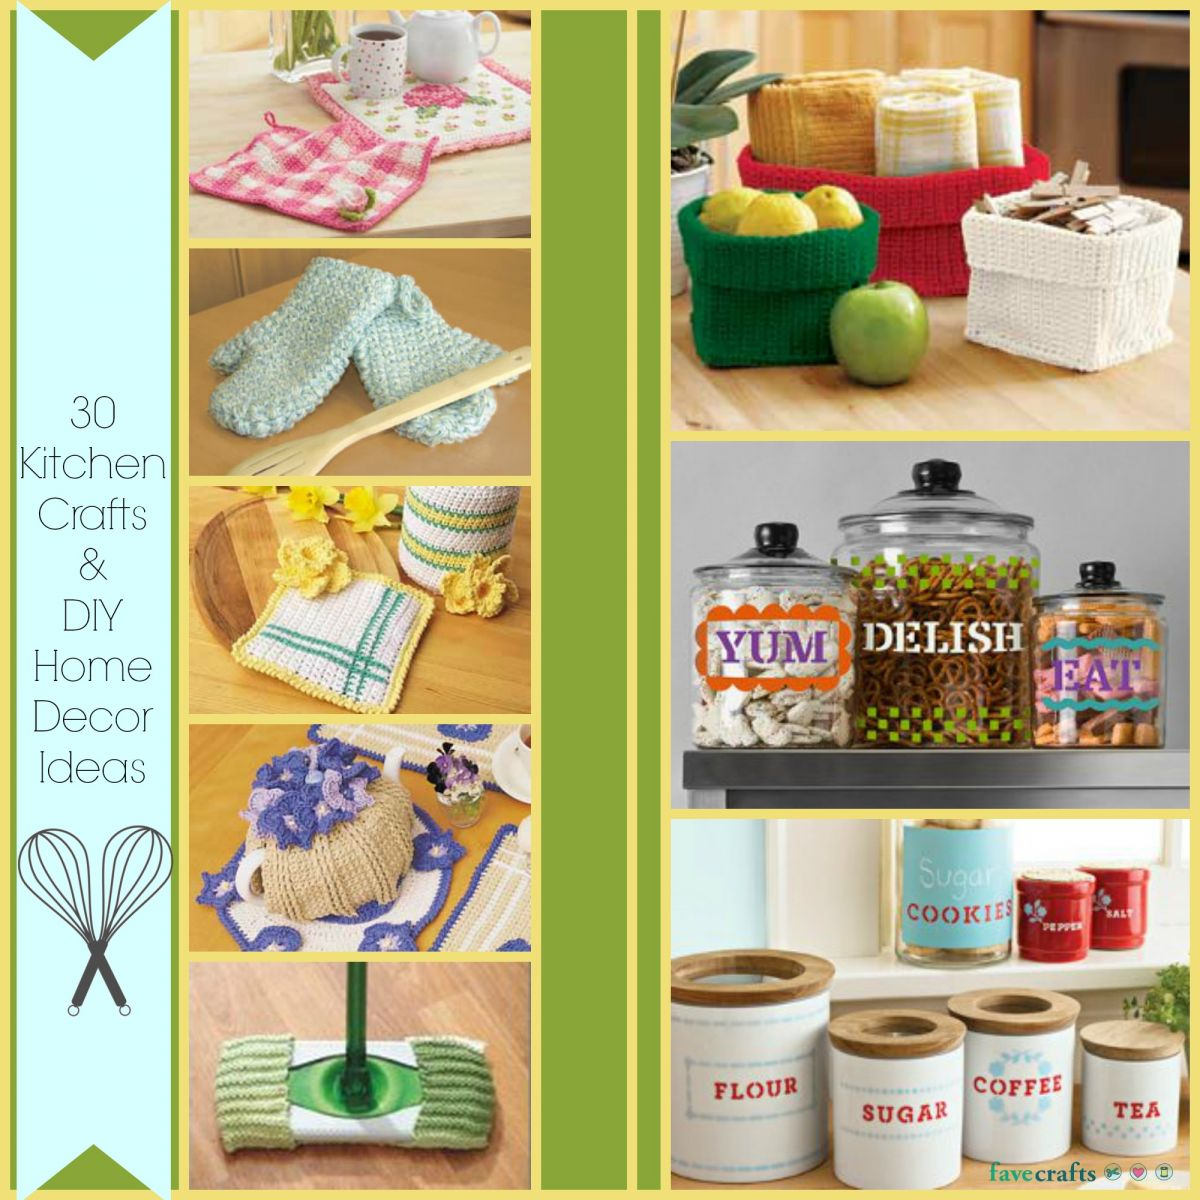 Easy Diy Home Decor Projects 30 kitchen crafts and diy home decor ideas | favecrafts